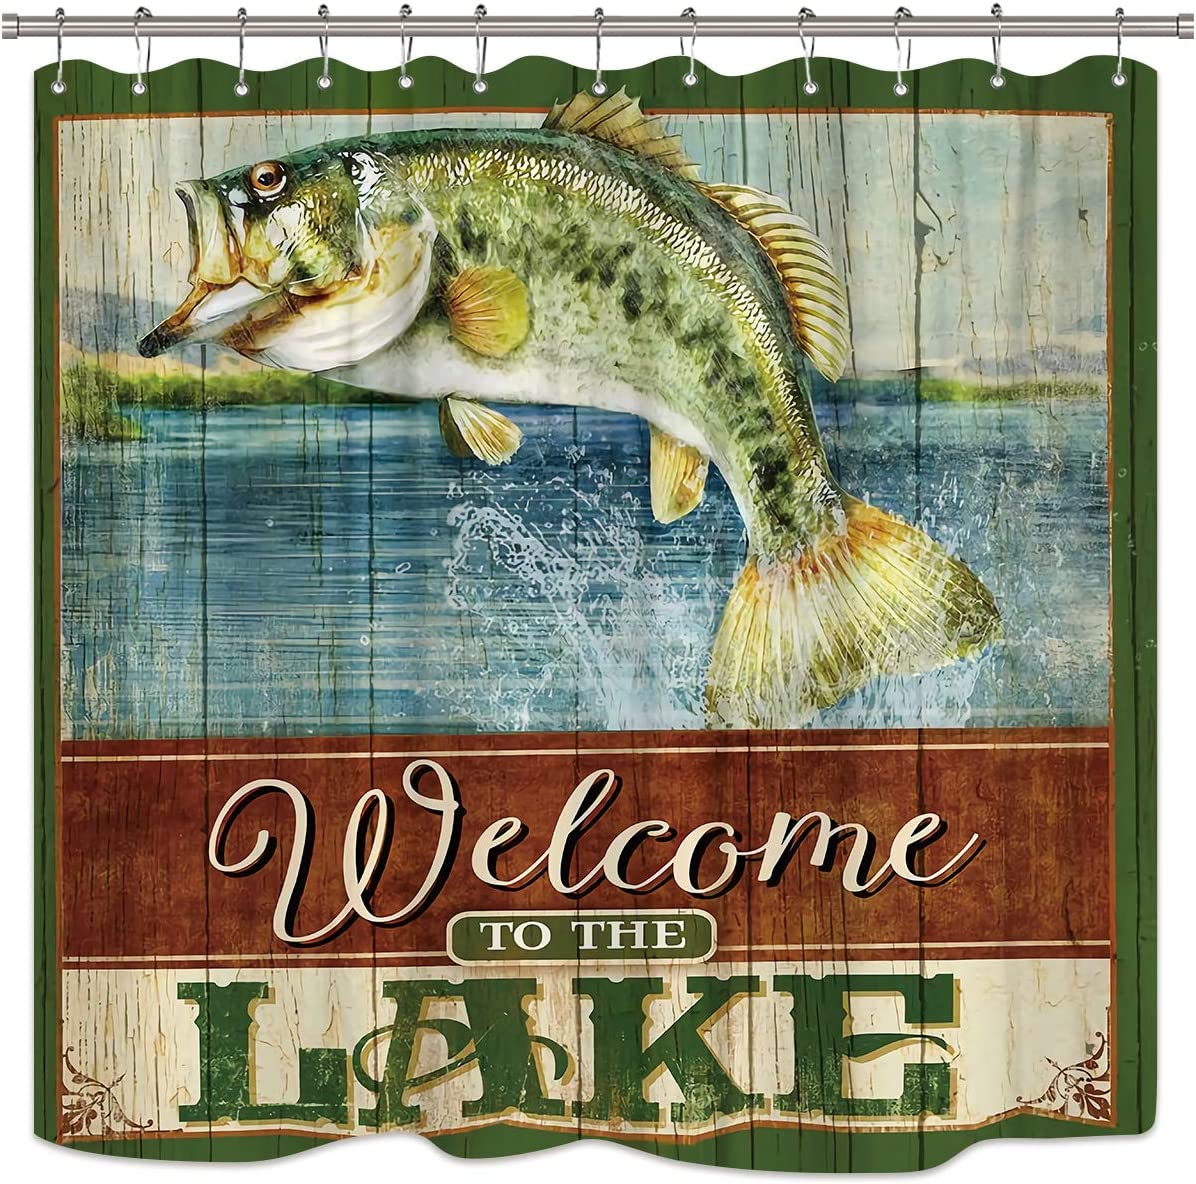 Riyidecor Fishing Shower Curtain Set Fish Lake Quotes Wooden Plank Rustic Theme Nautical Green Man Bathroom Home Decor Panel Fabric Waterproof Bathtub 12-Pack Plastic Shower Hooks 72x72 Inch